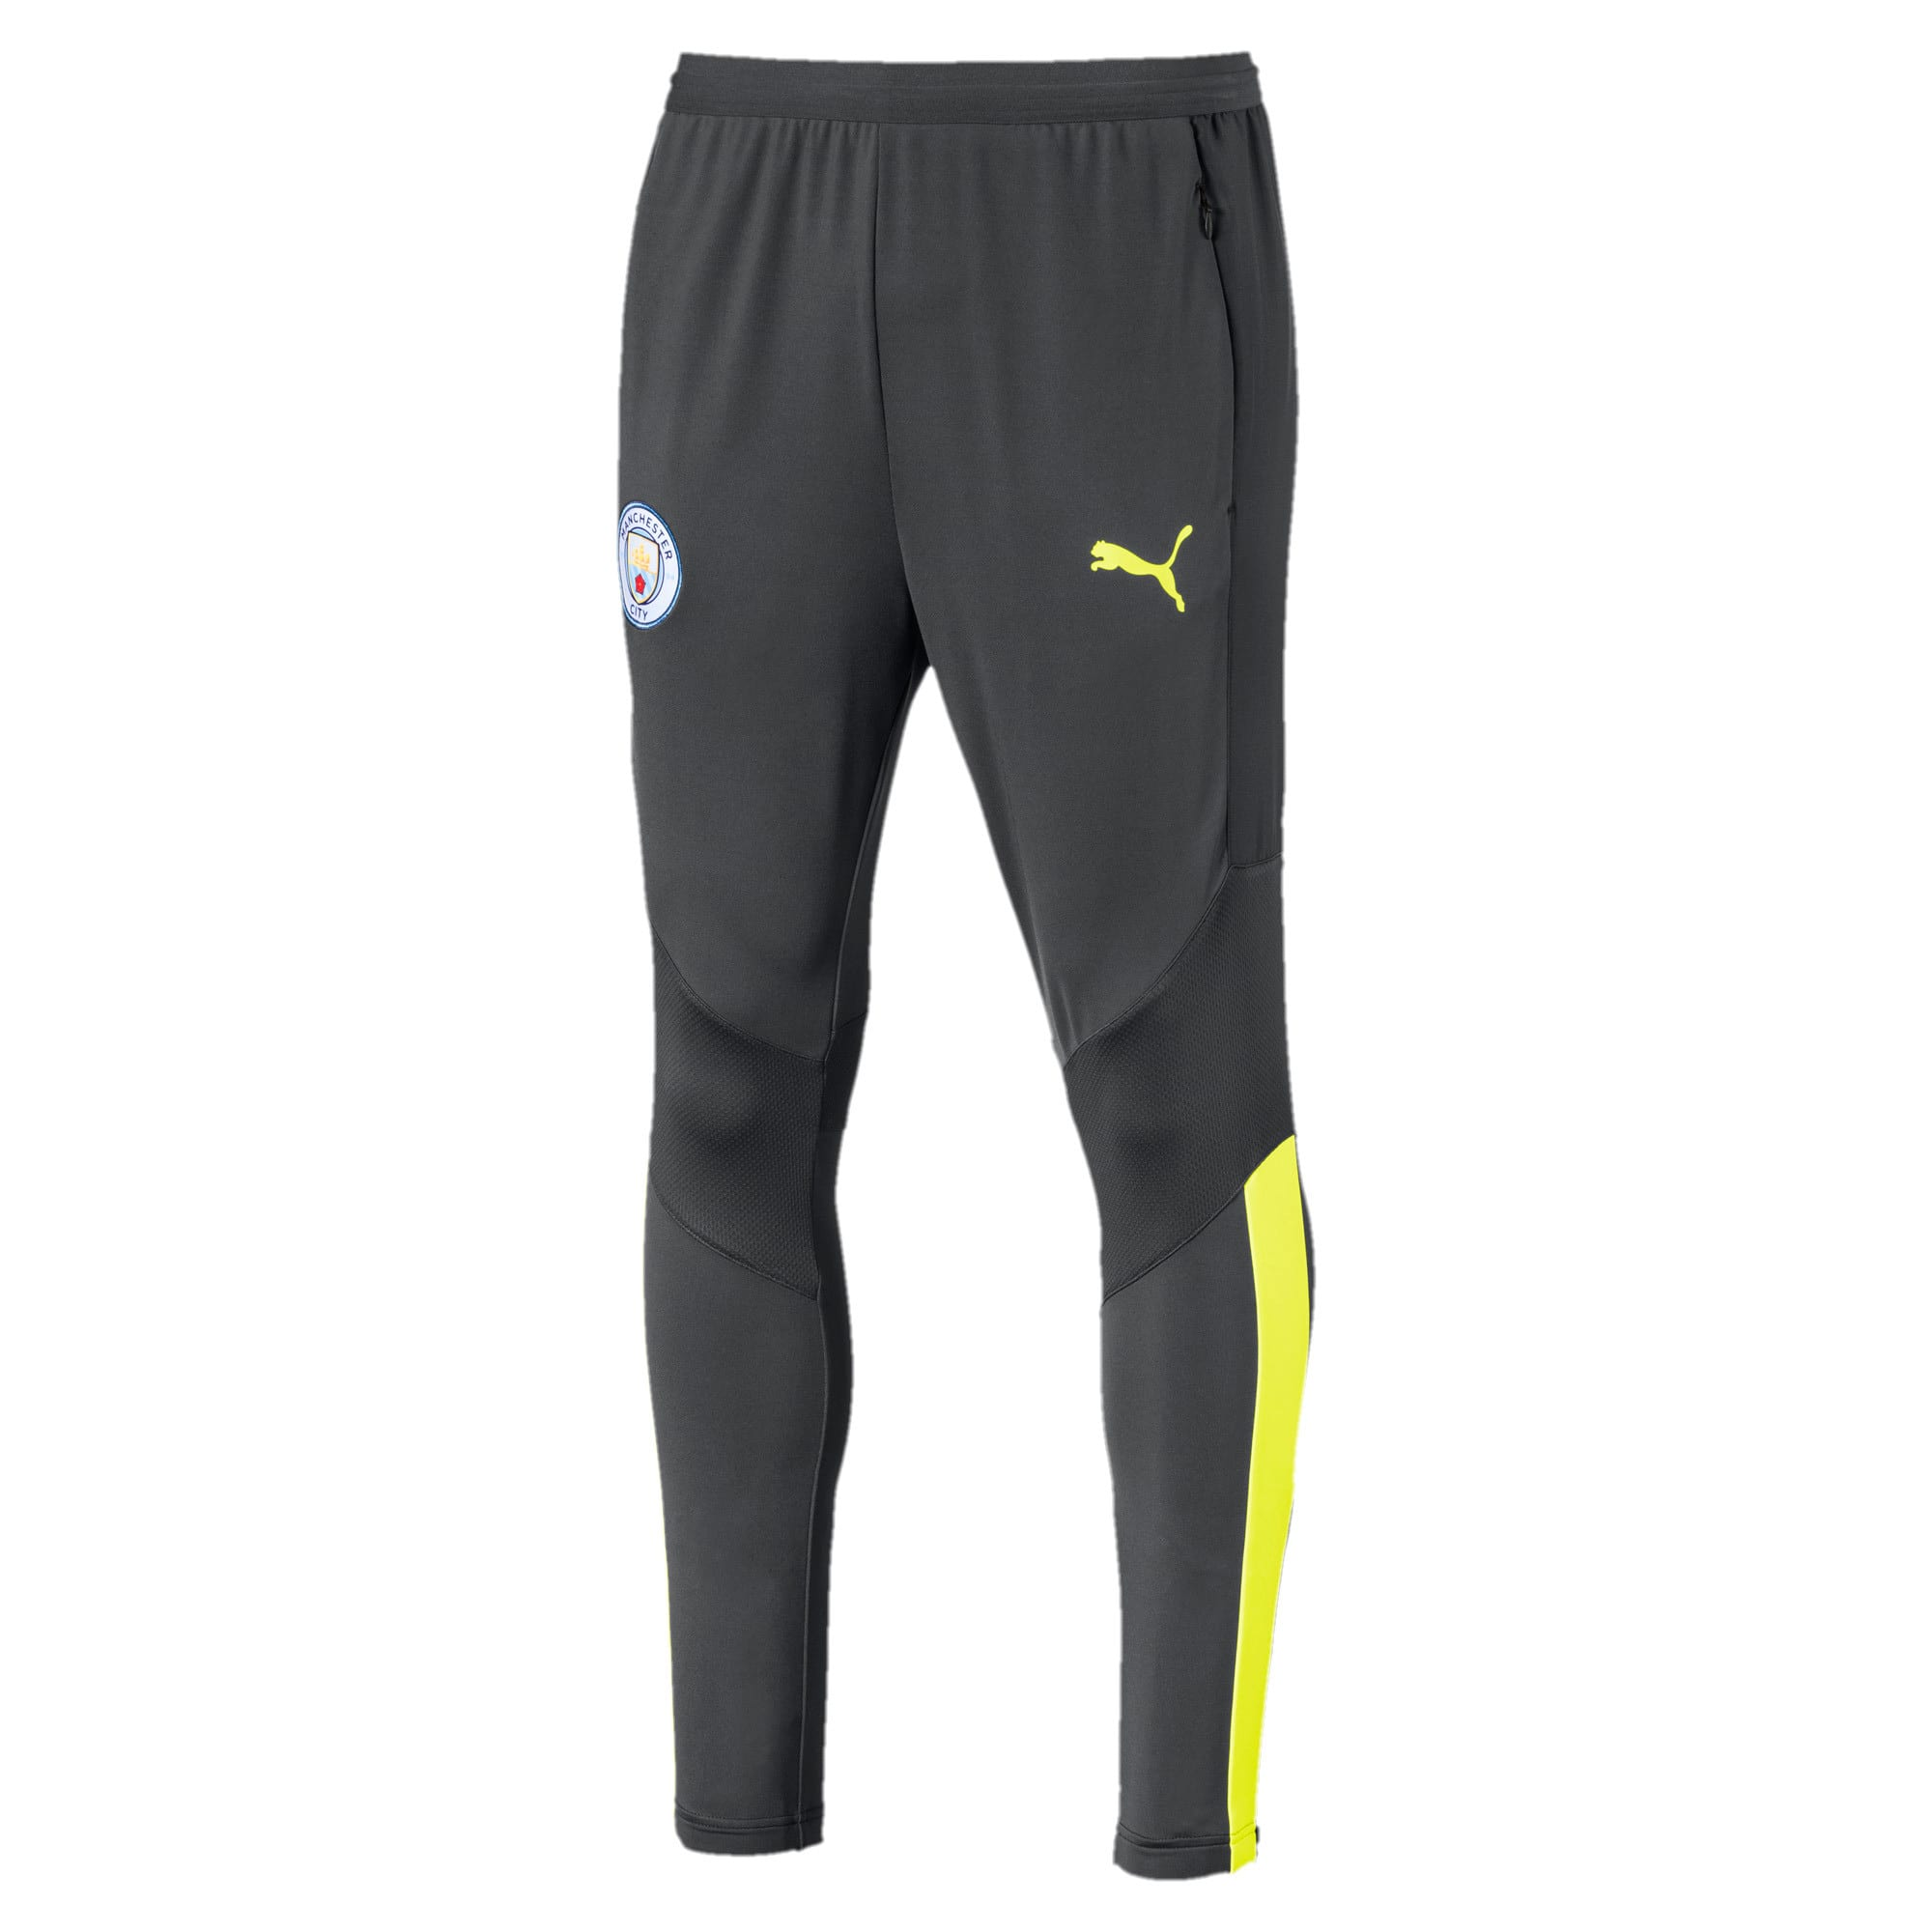 Thumbnail 1 of Manchester City FC Herren Pro Trainingshose, Asphalt-Fizzy Yellow, medium